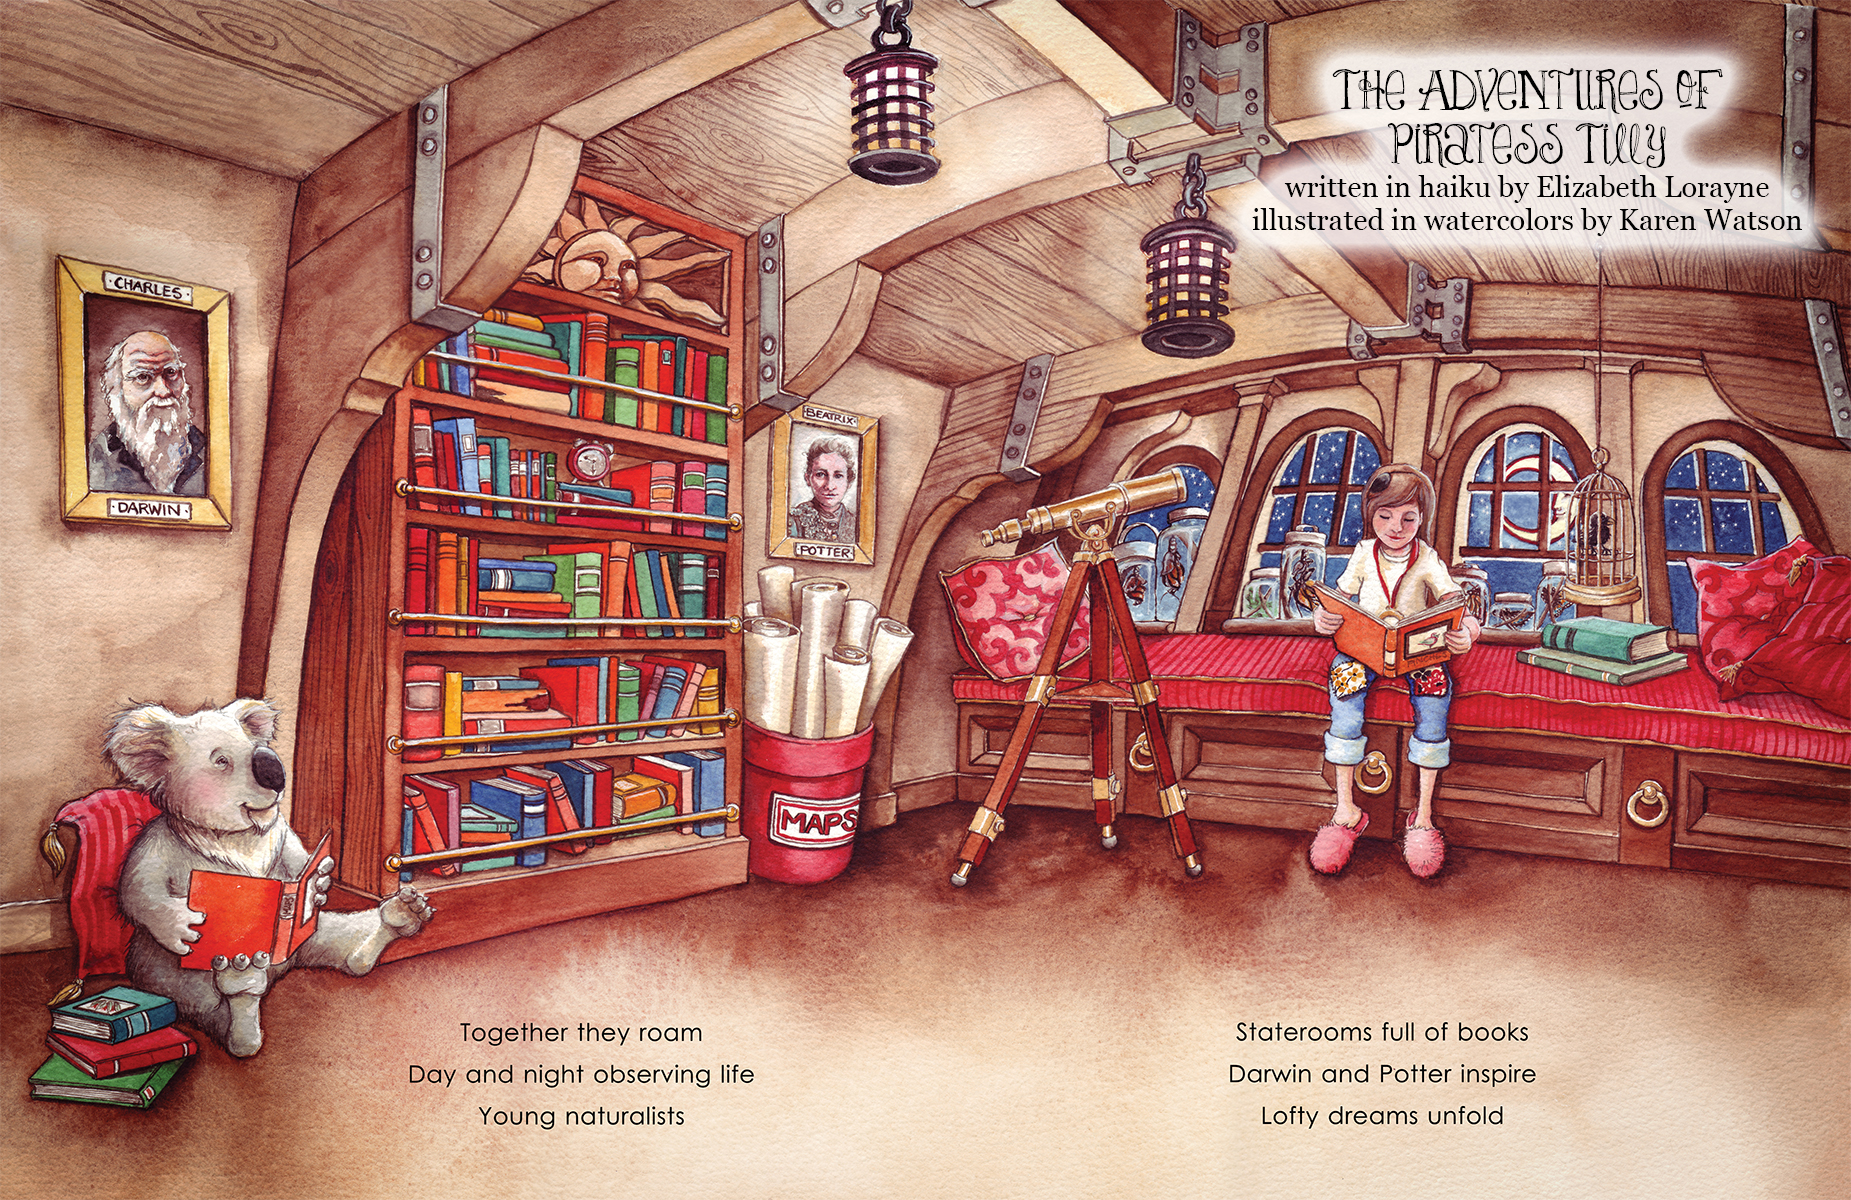 Piratess Tilly Potter and Darwin sample page